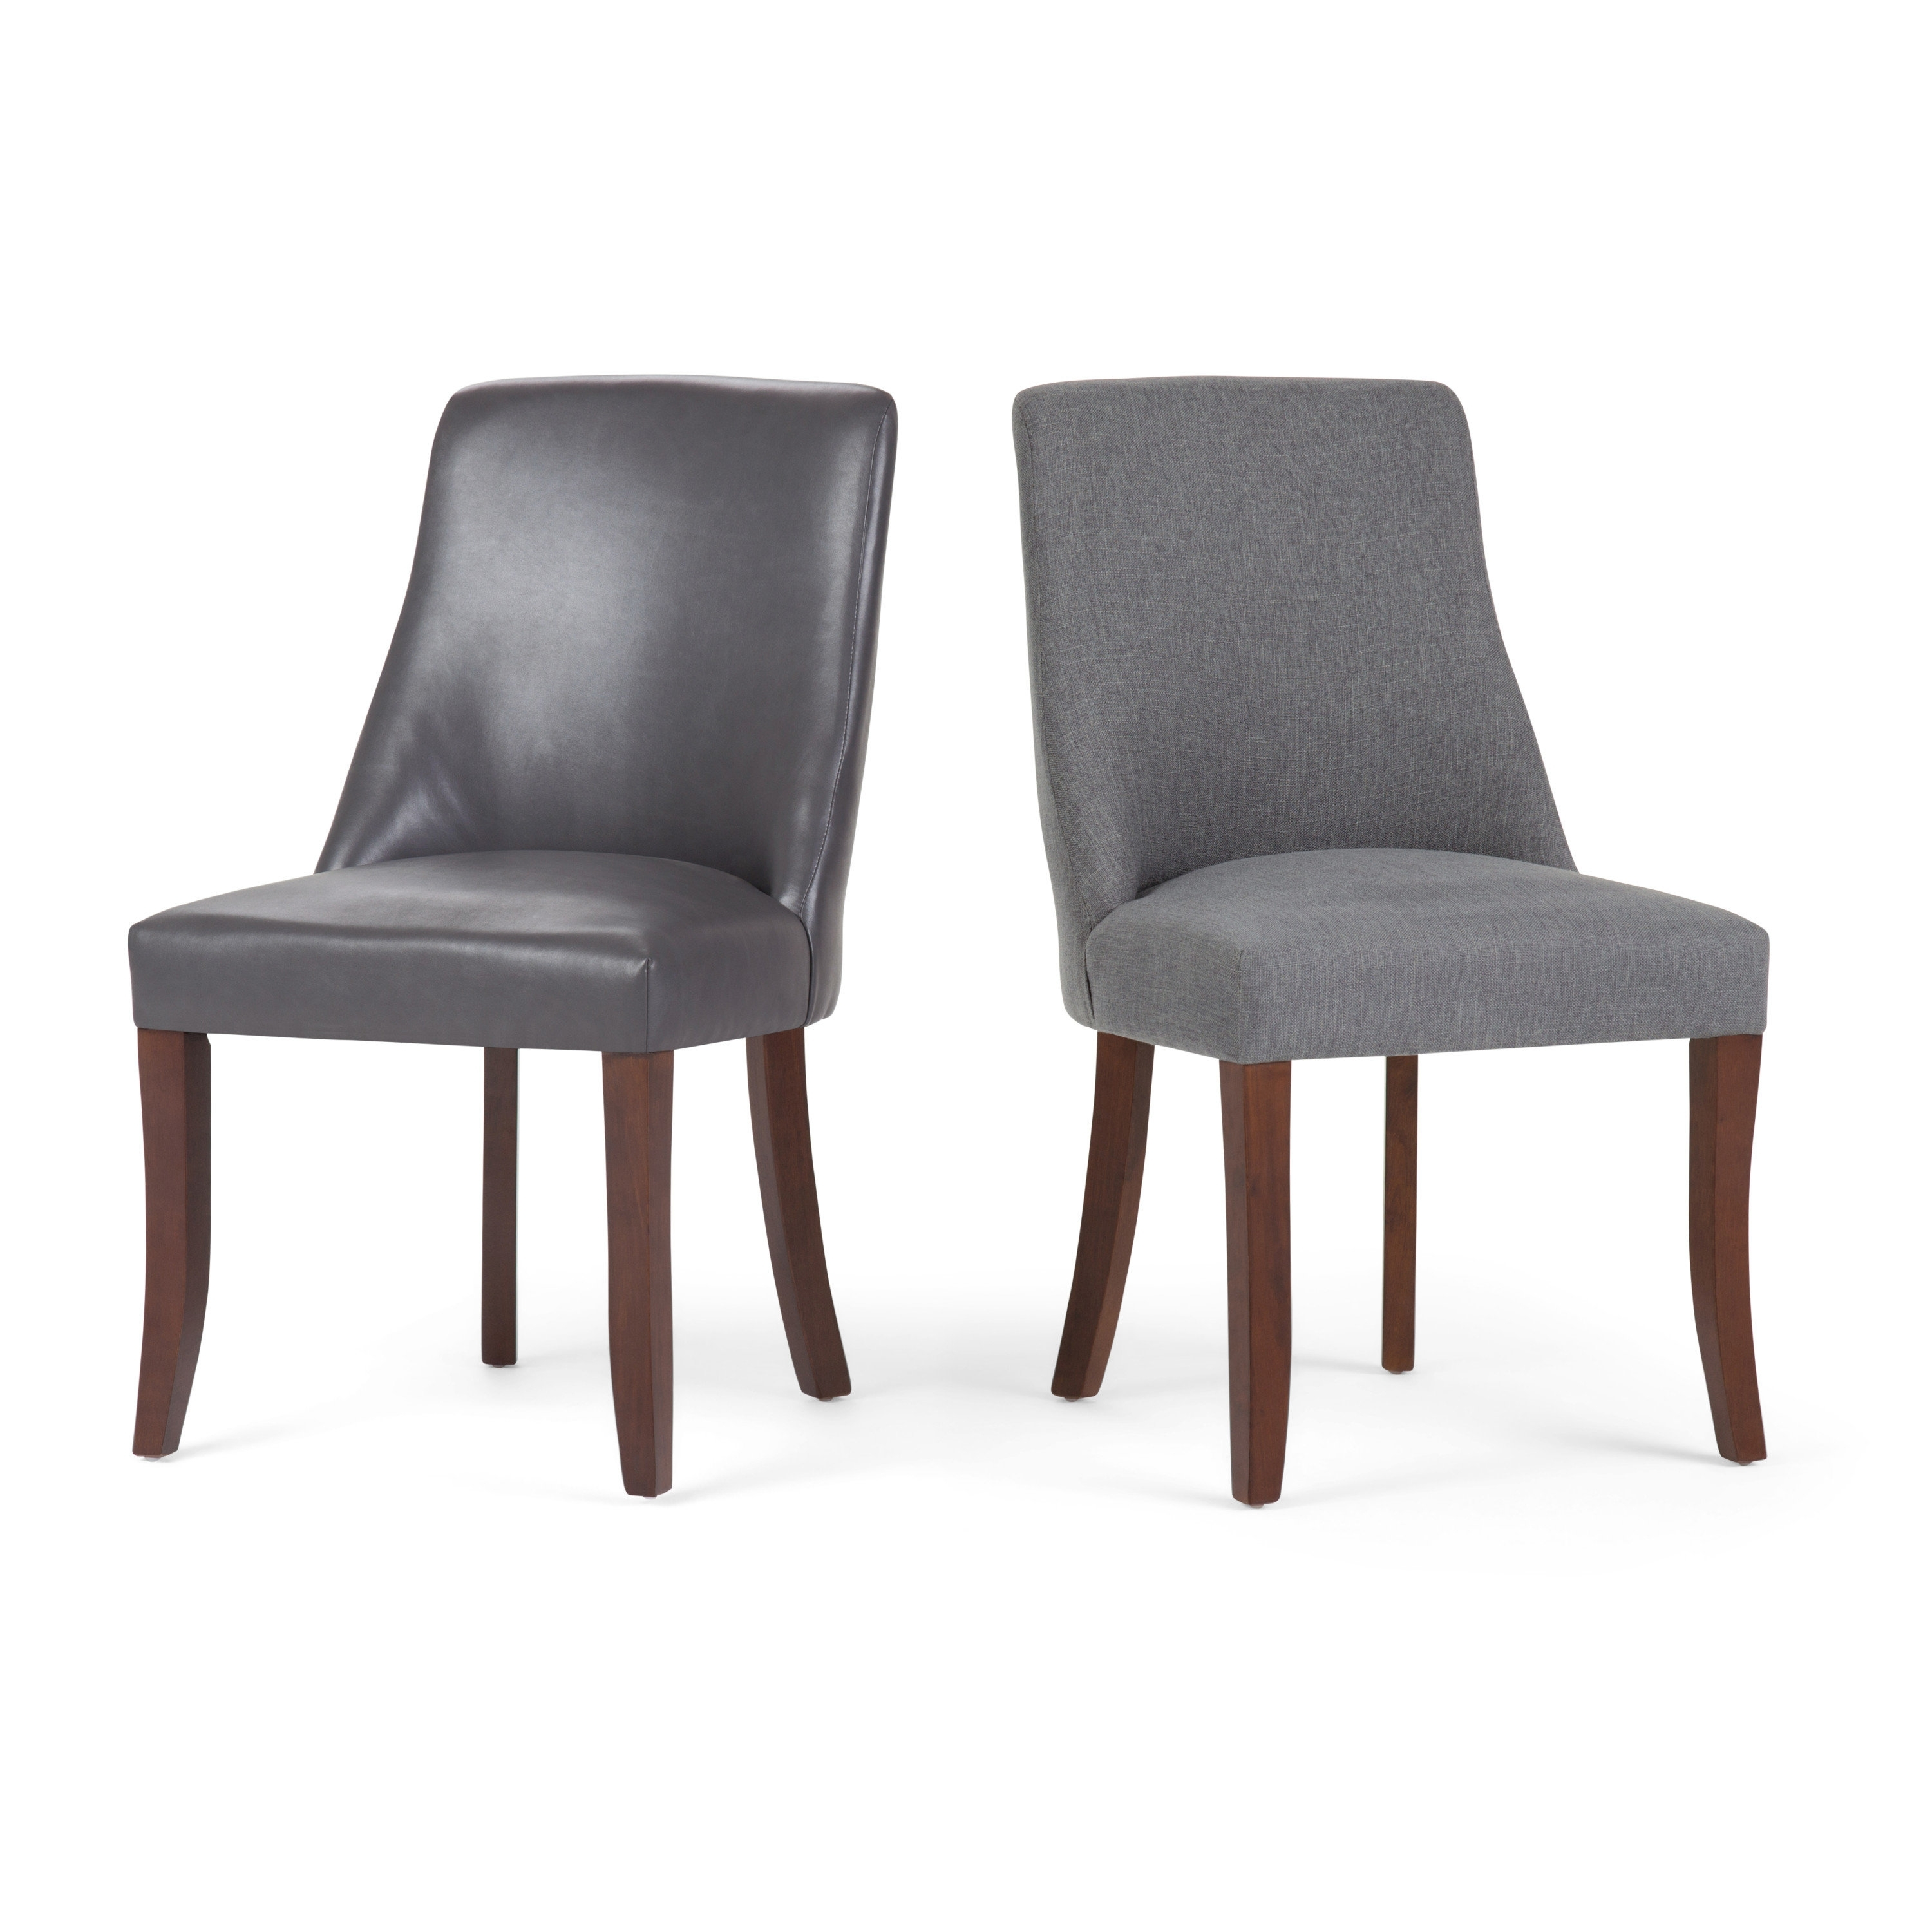 Popular Photo of Walden Upholstered Arm Chairs